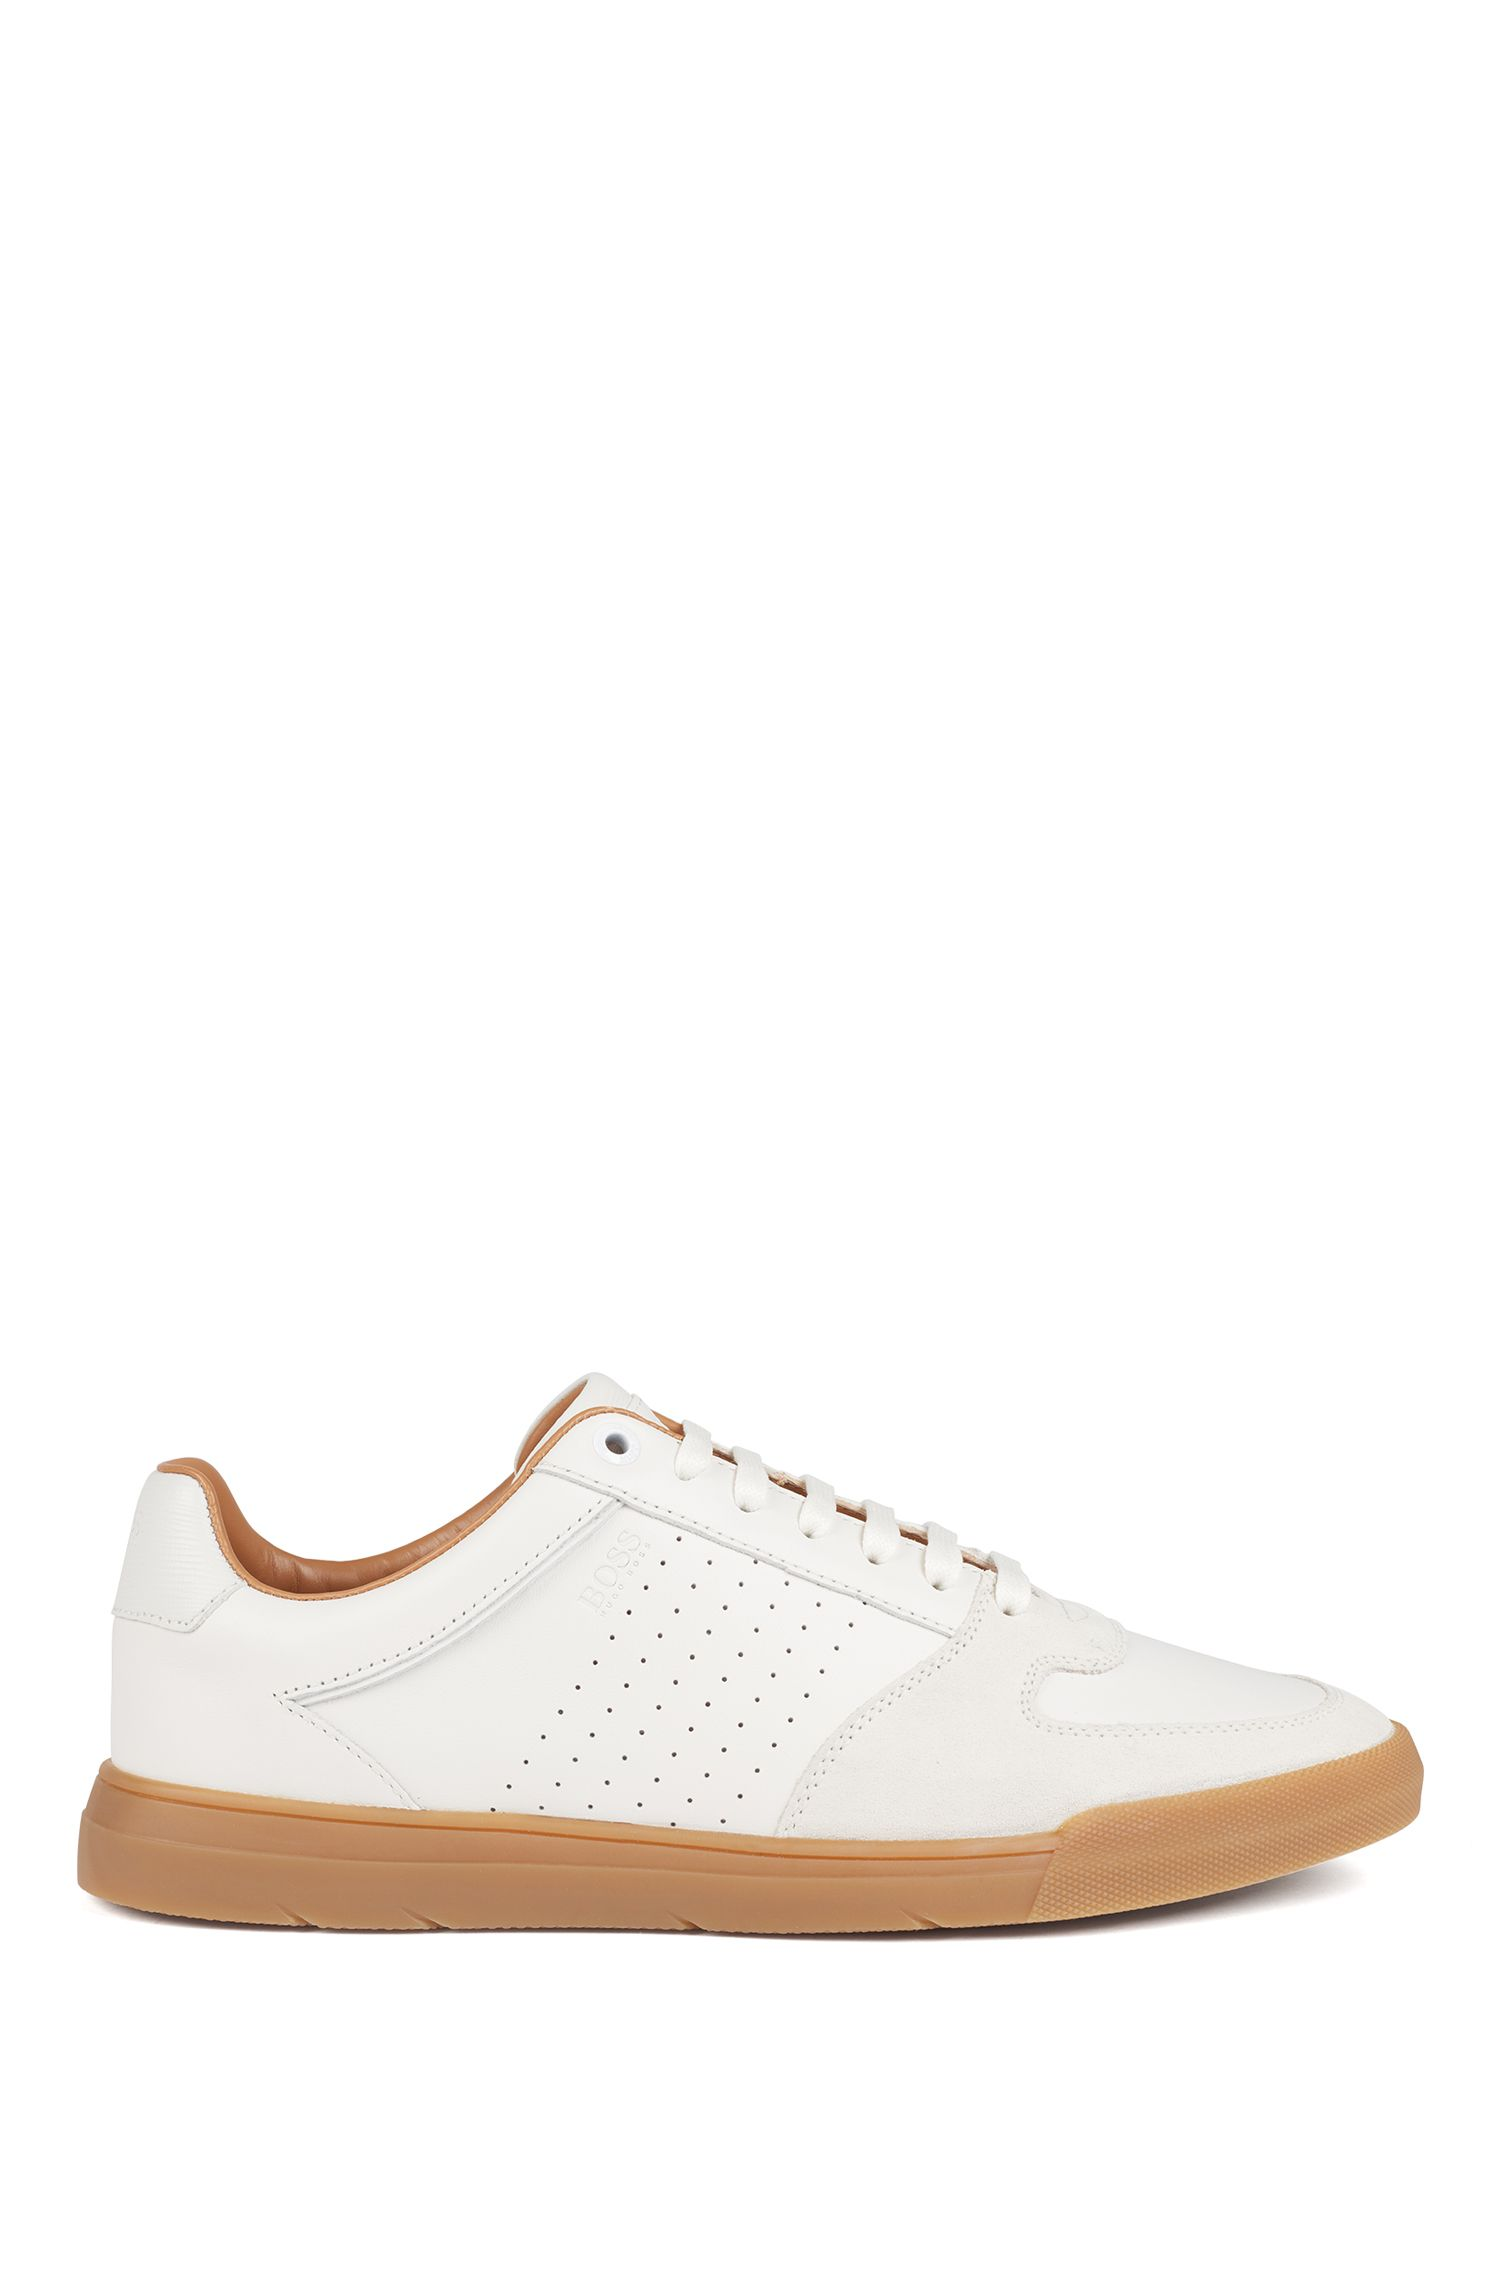 Low-top sneakers in suede and nappa leather, White